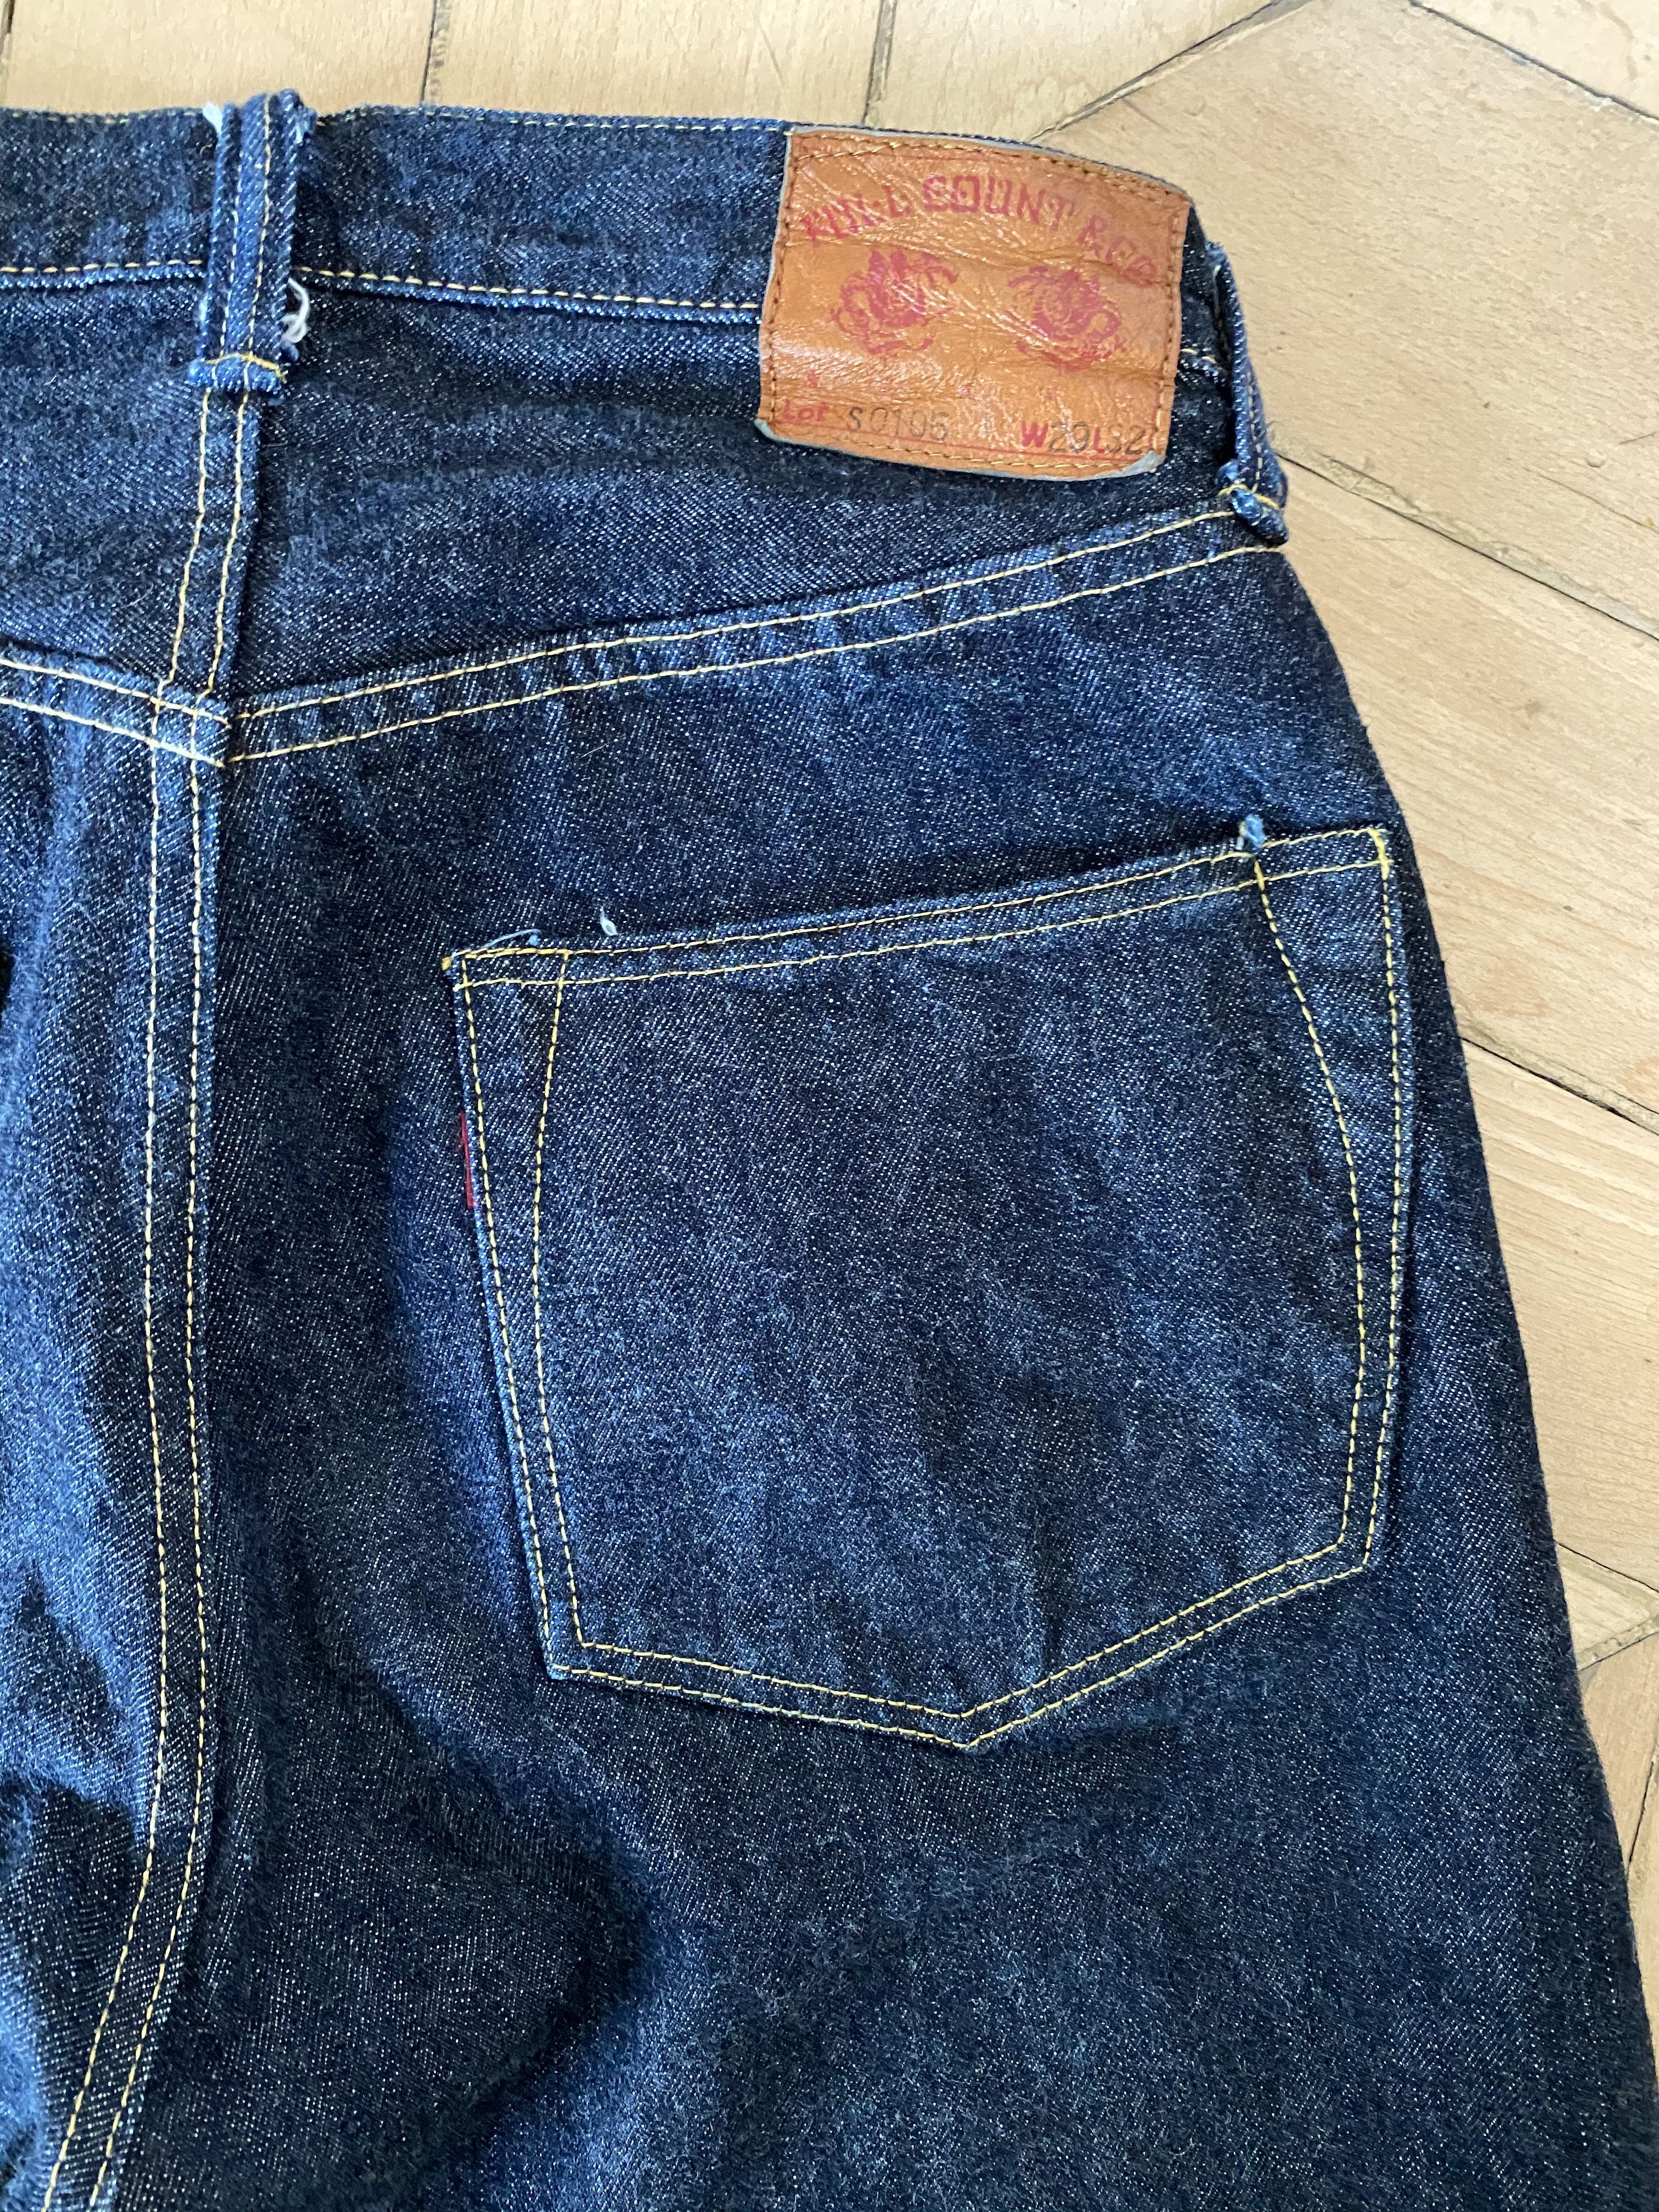 Full Count Jeans S0105W WWII 13.75OZ WWII